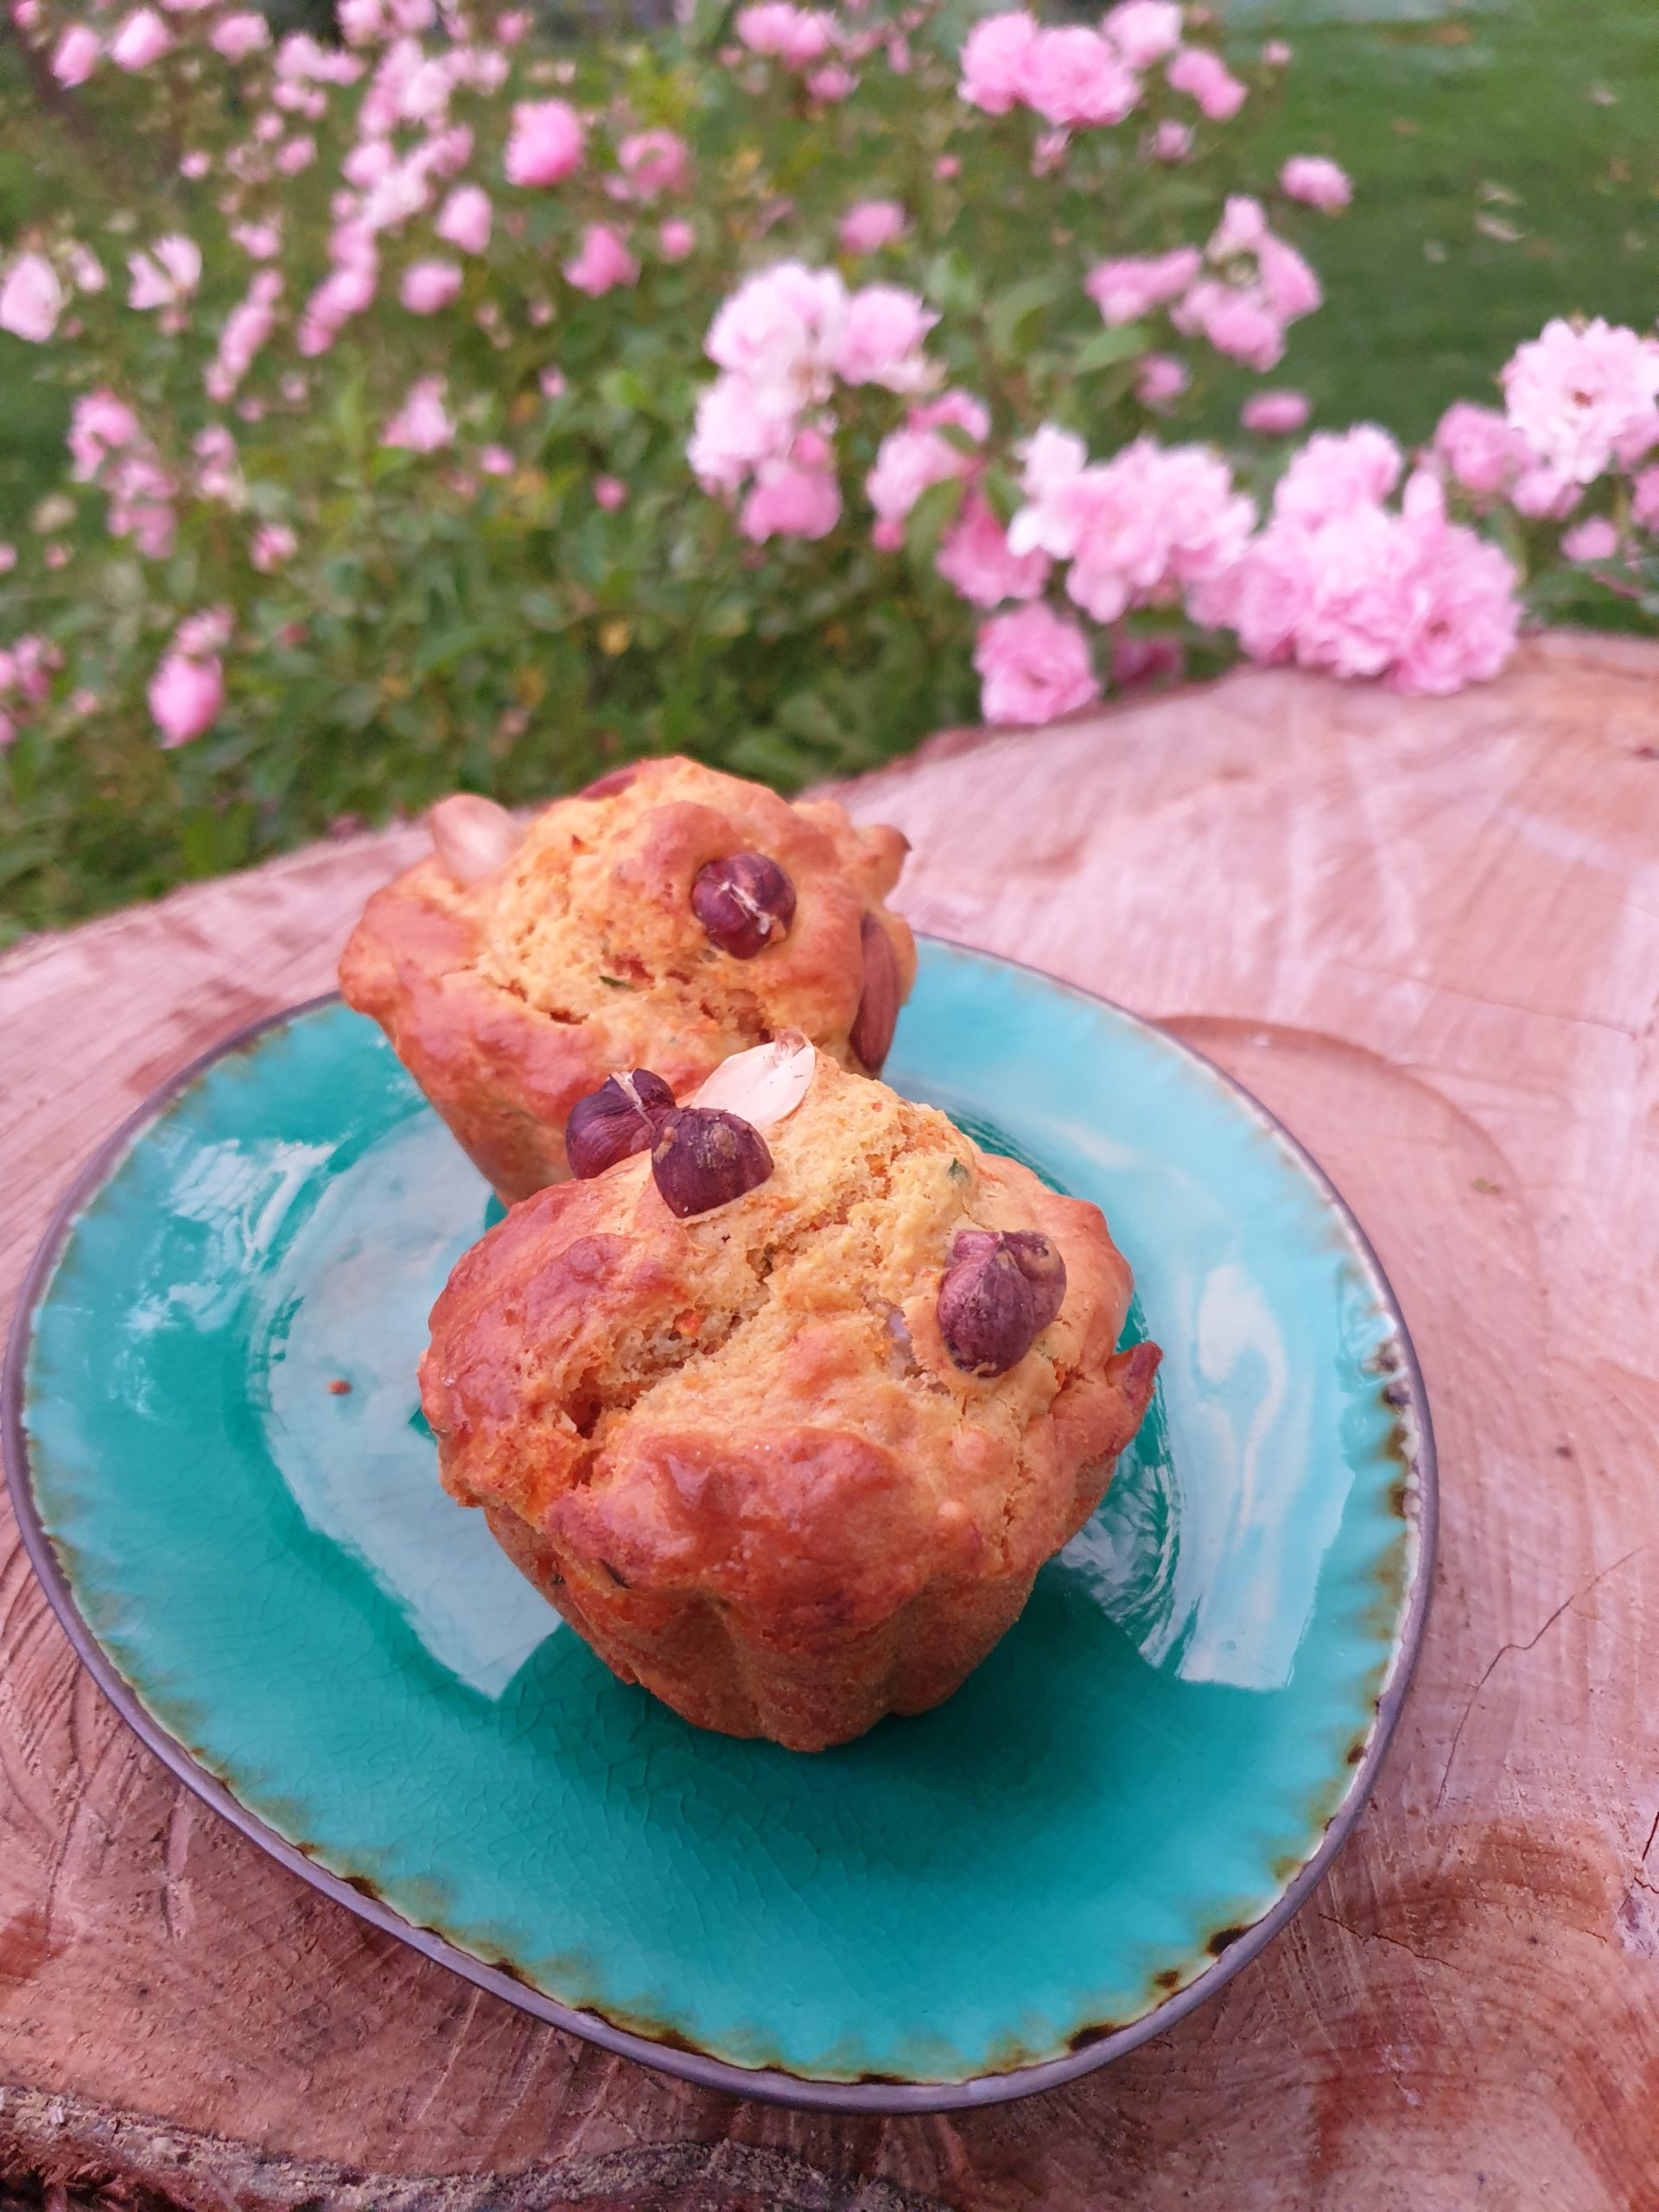 Muffin carotte patate douce